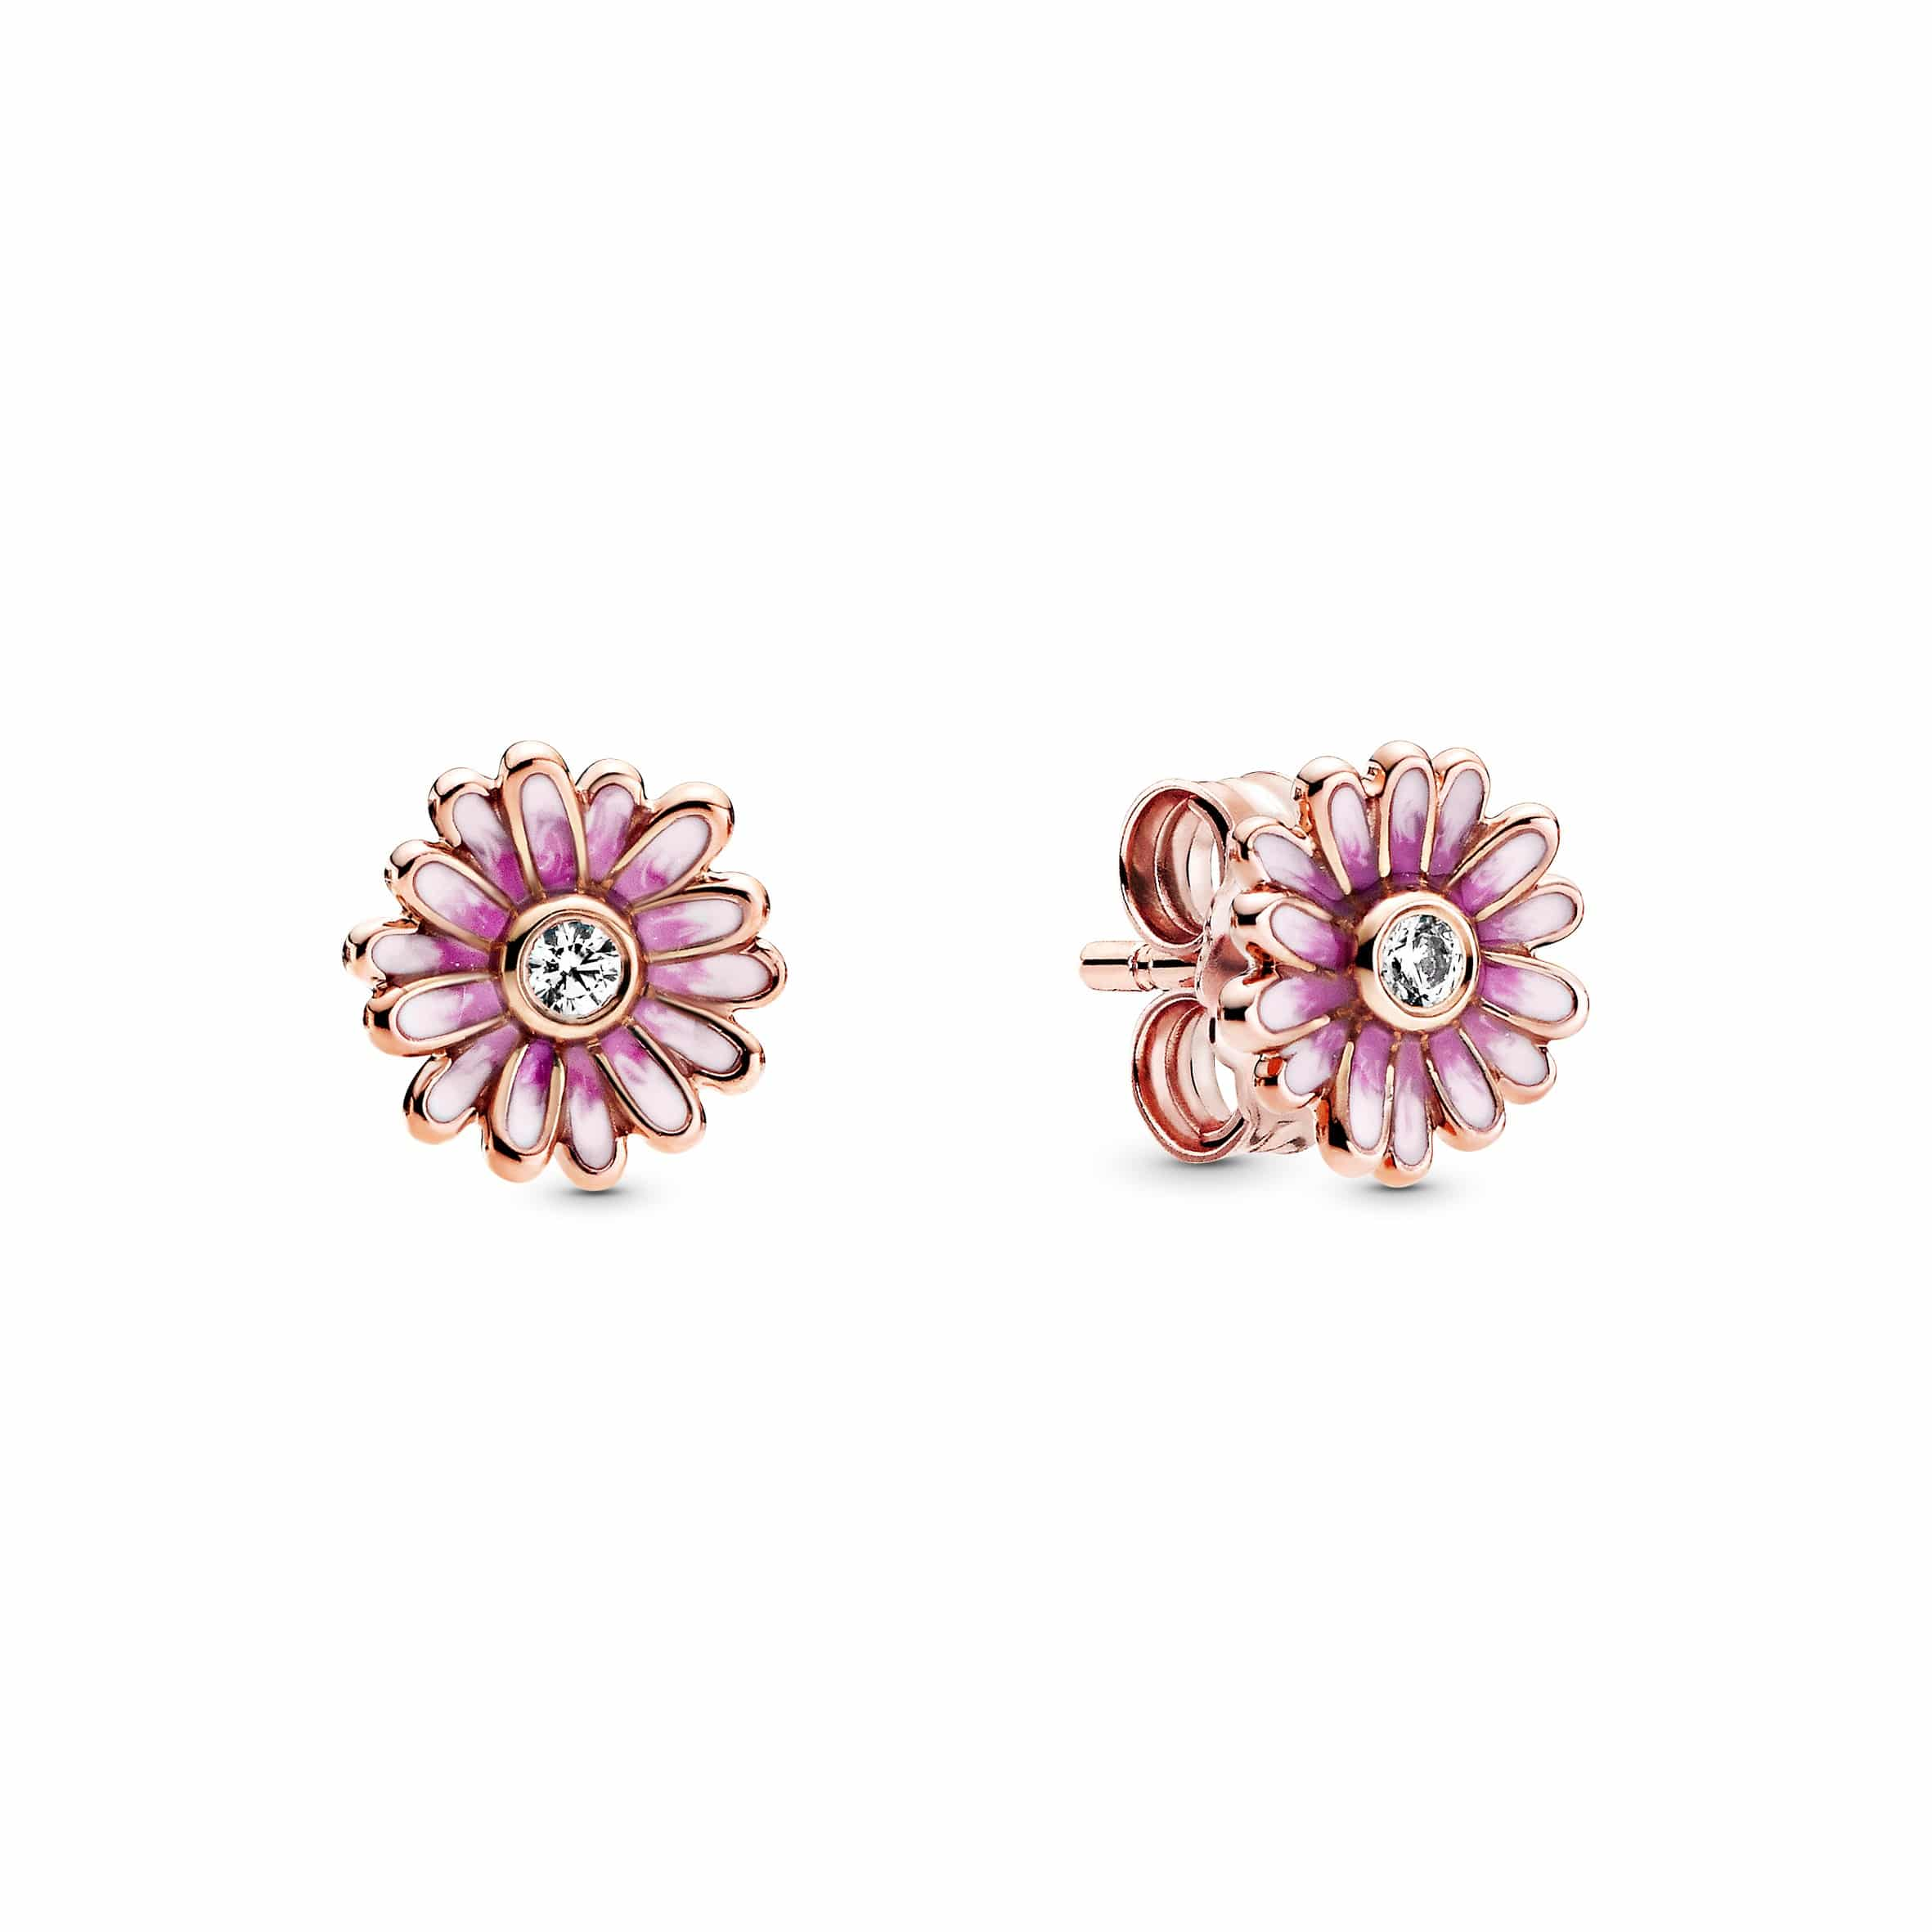 boucles d'oreilles de la collection Pandora Garden